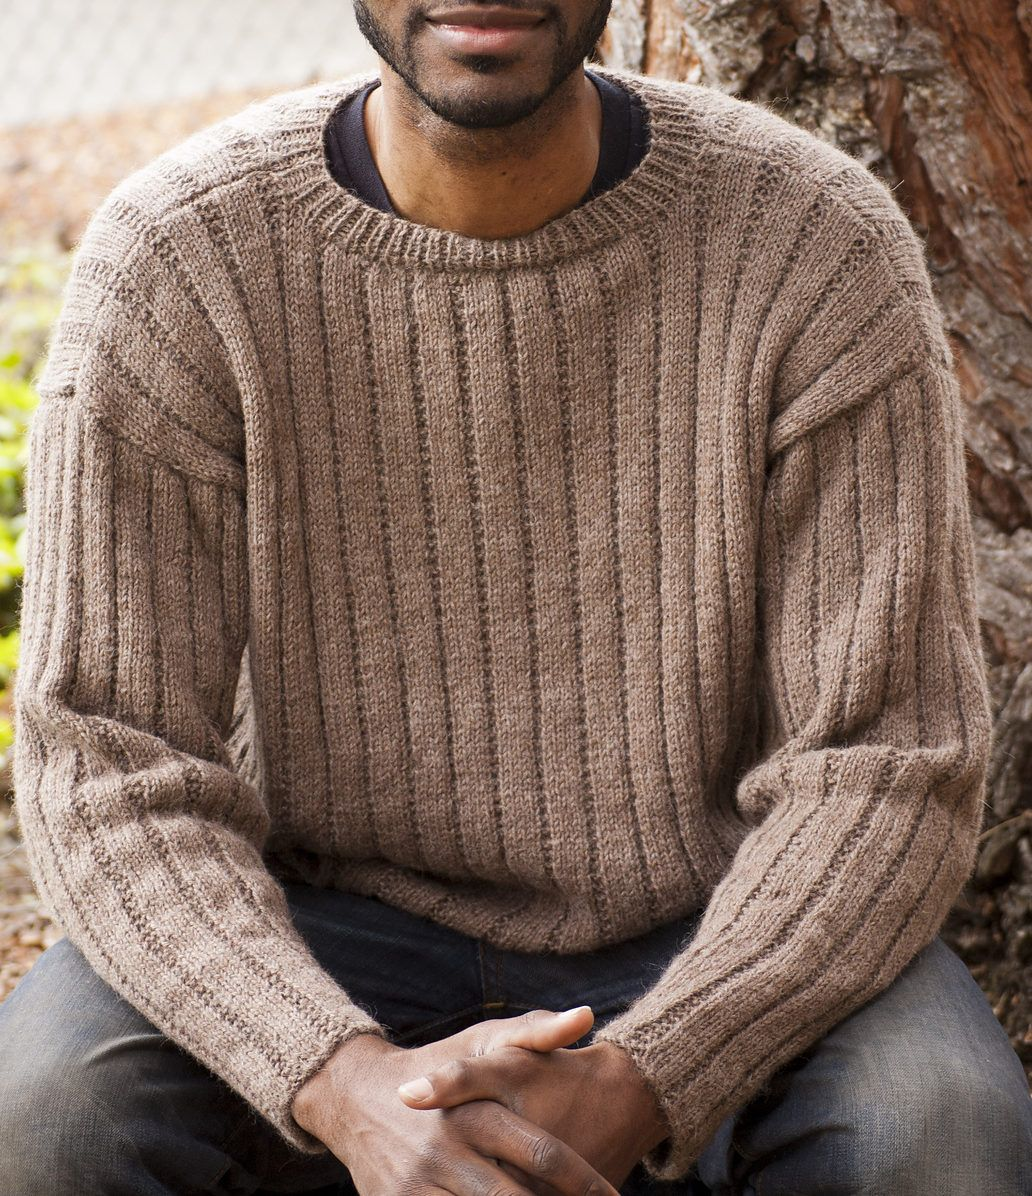 a03051689b03f Free Knitting Pattern for 2-Row Repeat Garter Rib Men s Sweater -  Long-sleeved pullover sweater knit with a two-row repeat in worsted weight  yarn. Sizes S ...